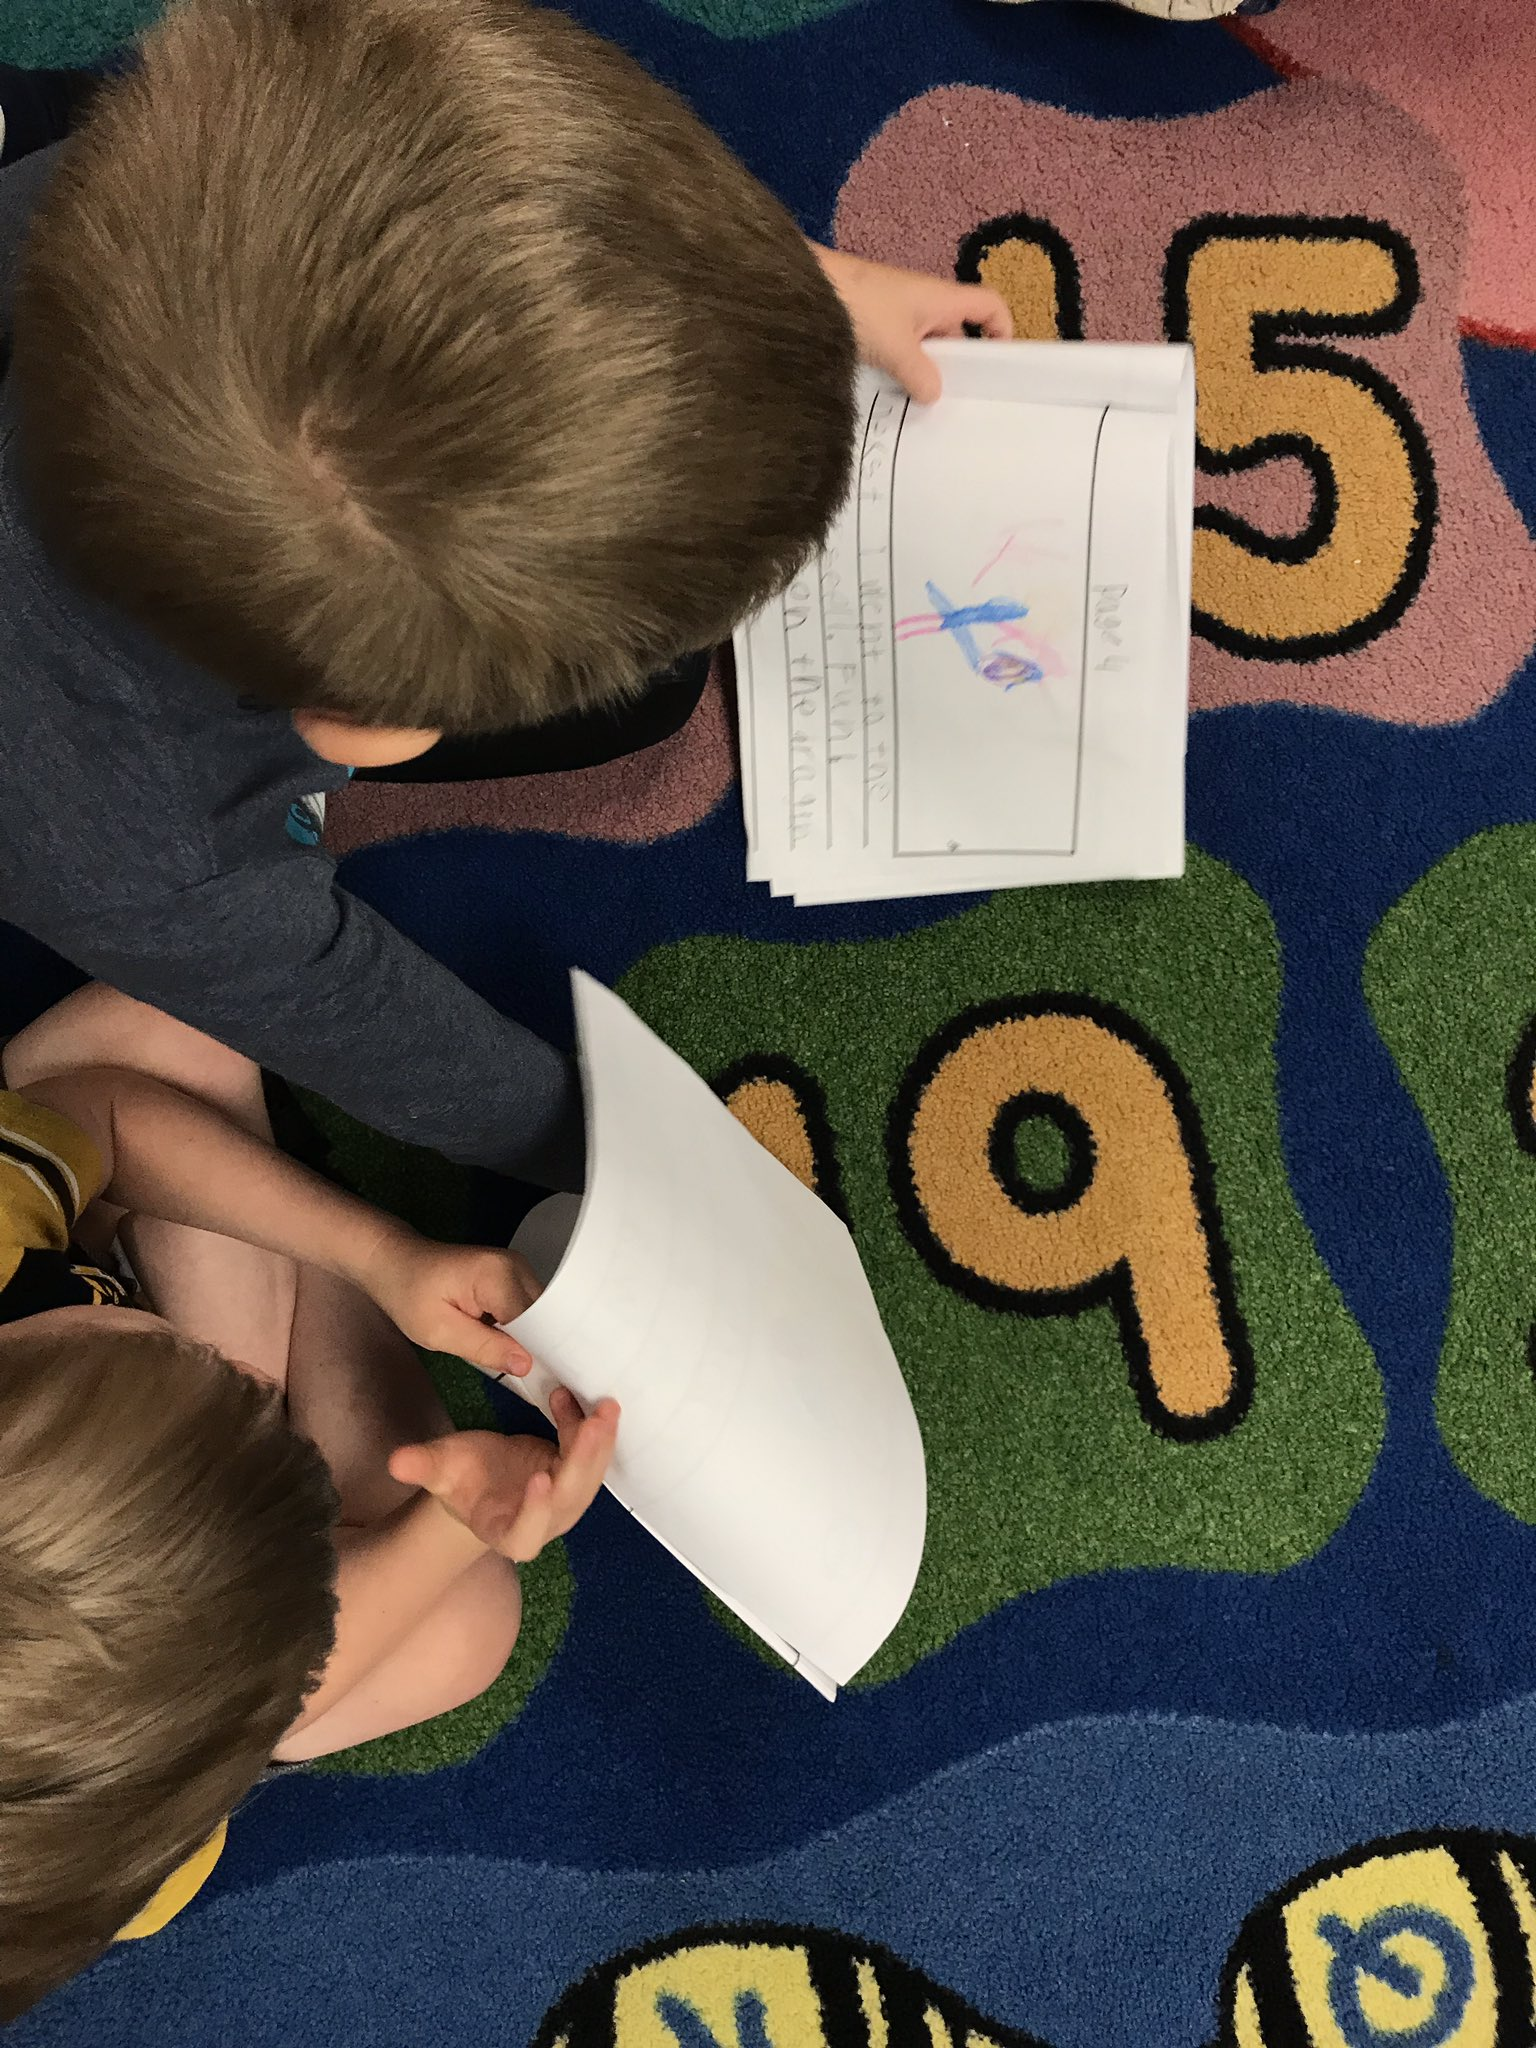 Share time is such an important part of Writer's Workshop...a great time to discover what they are doing well and what they can still work on!  @KinderTeacherB https://t.co/PiN0Yrfqgk